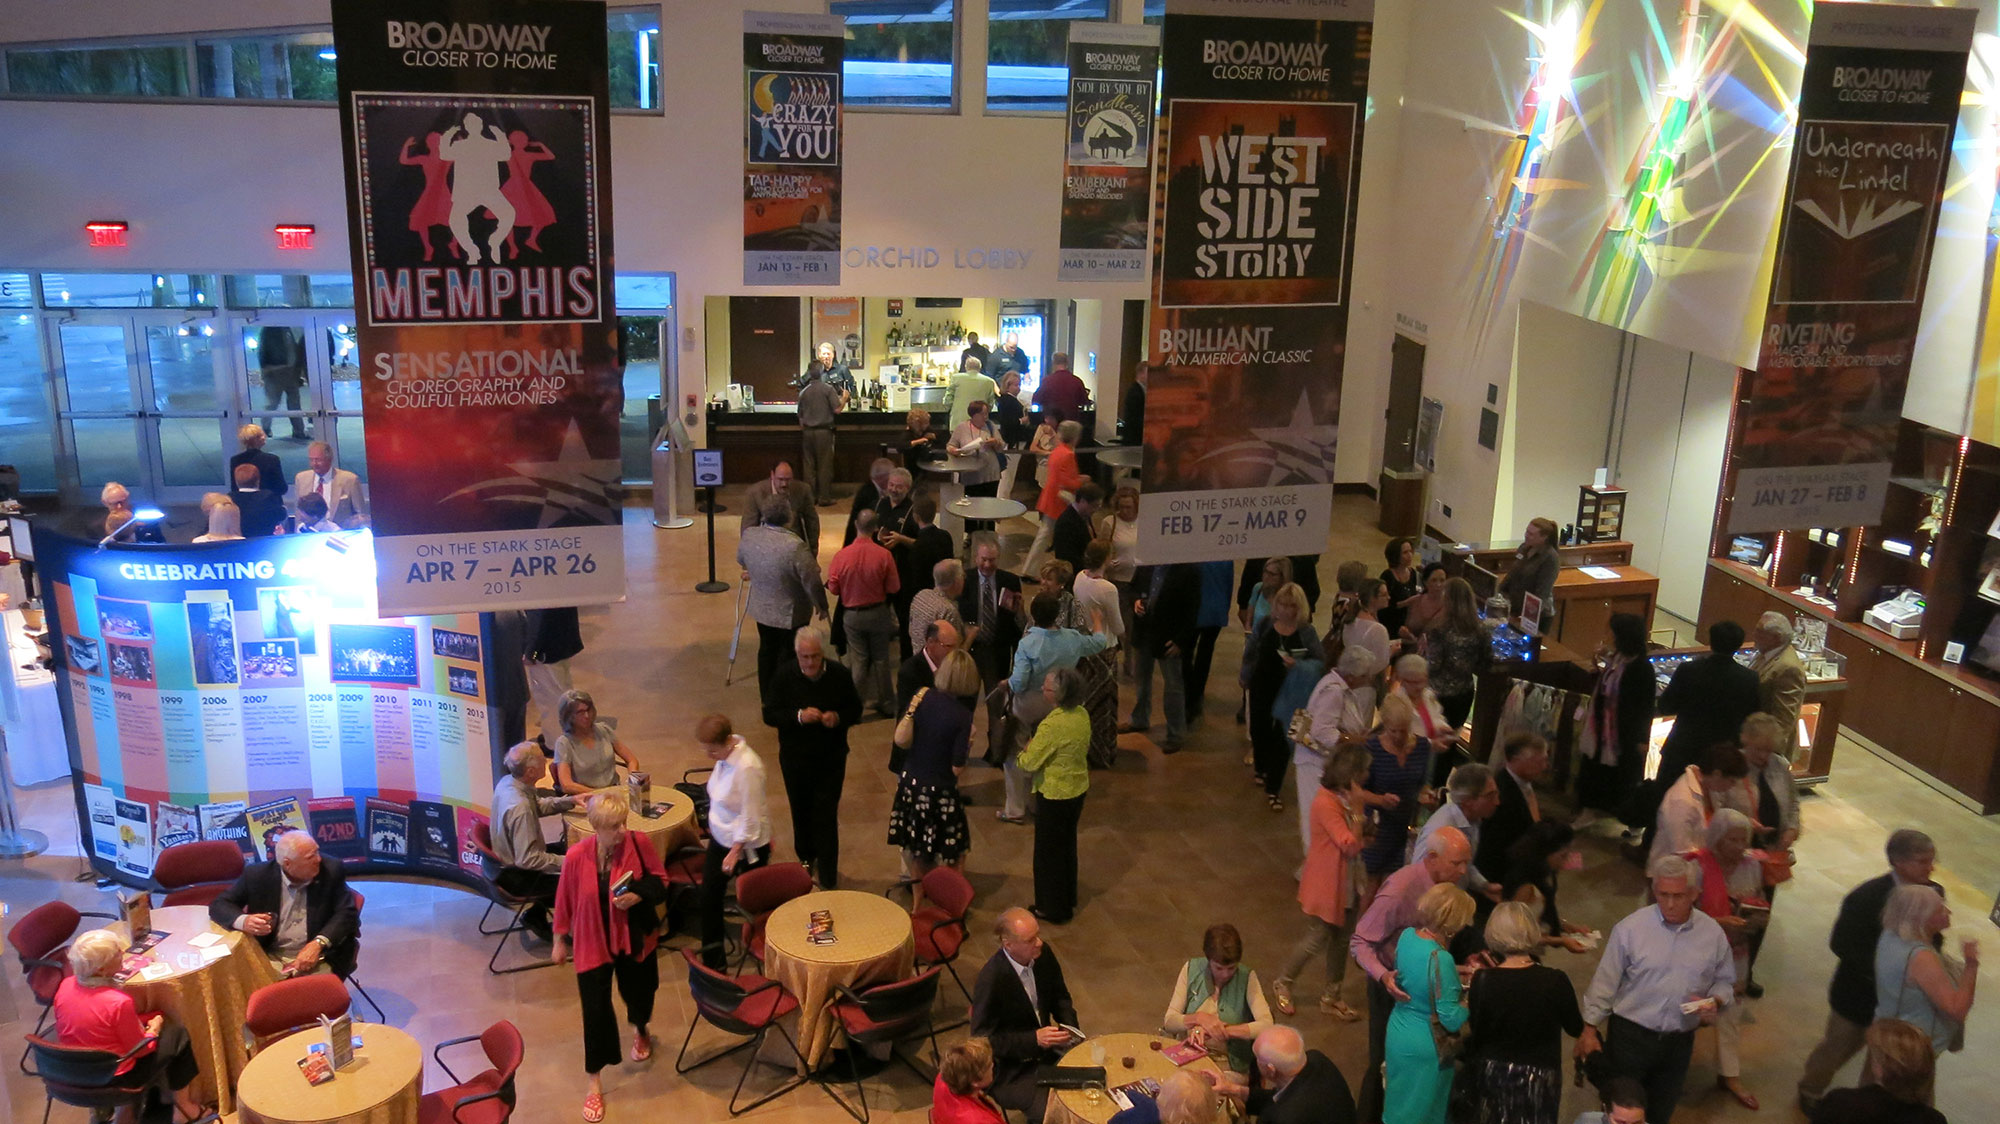 Orchid Lobby Bar & Concessions - Our full bar is open one hour prior to every show and during intermission for most shows... serving cold drinks, domestic and imported beer, premium and top shelf spirits, liqueurs, coffee, special cocktails and a large selection of premium wines. We also offer a variety of chocolates, chips, and other treats.NOTE: Food and beverages are NOT permitted inside the theatre at your seat during musicals, plays, lectures and special events. During Comedy Zone and Howl at the Moon shows, food and beverages ARE allowed and there is table service inside the Theatre.